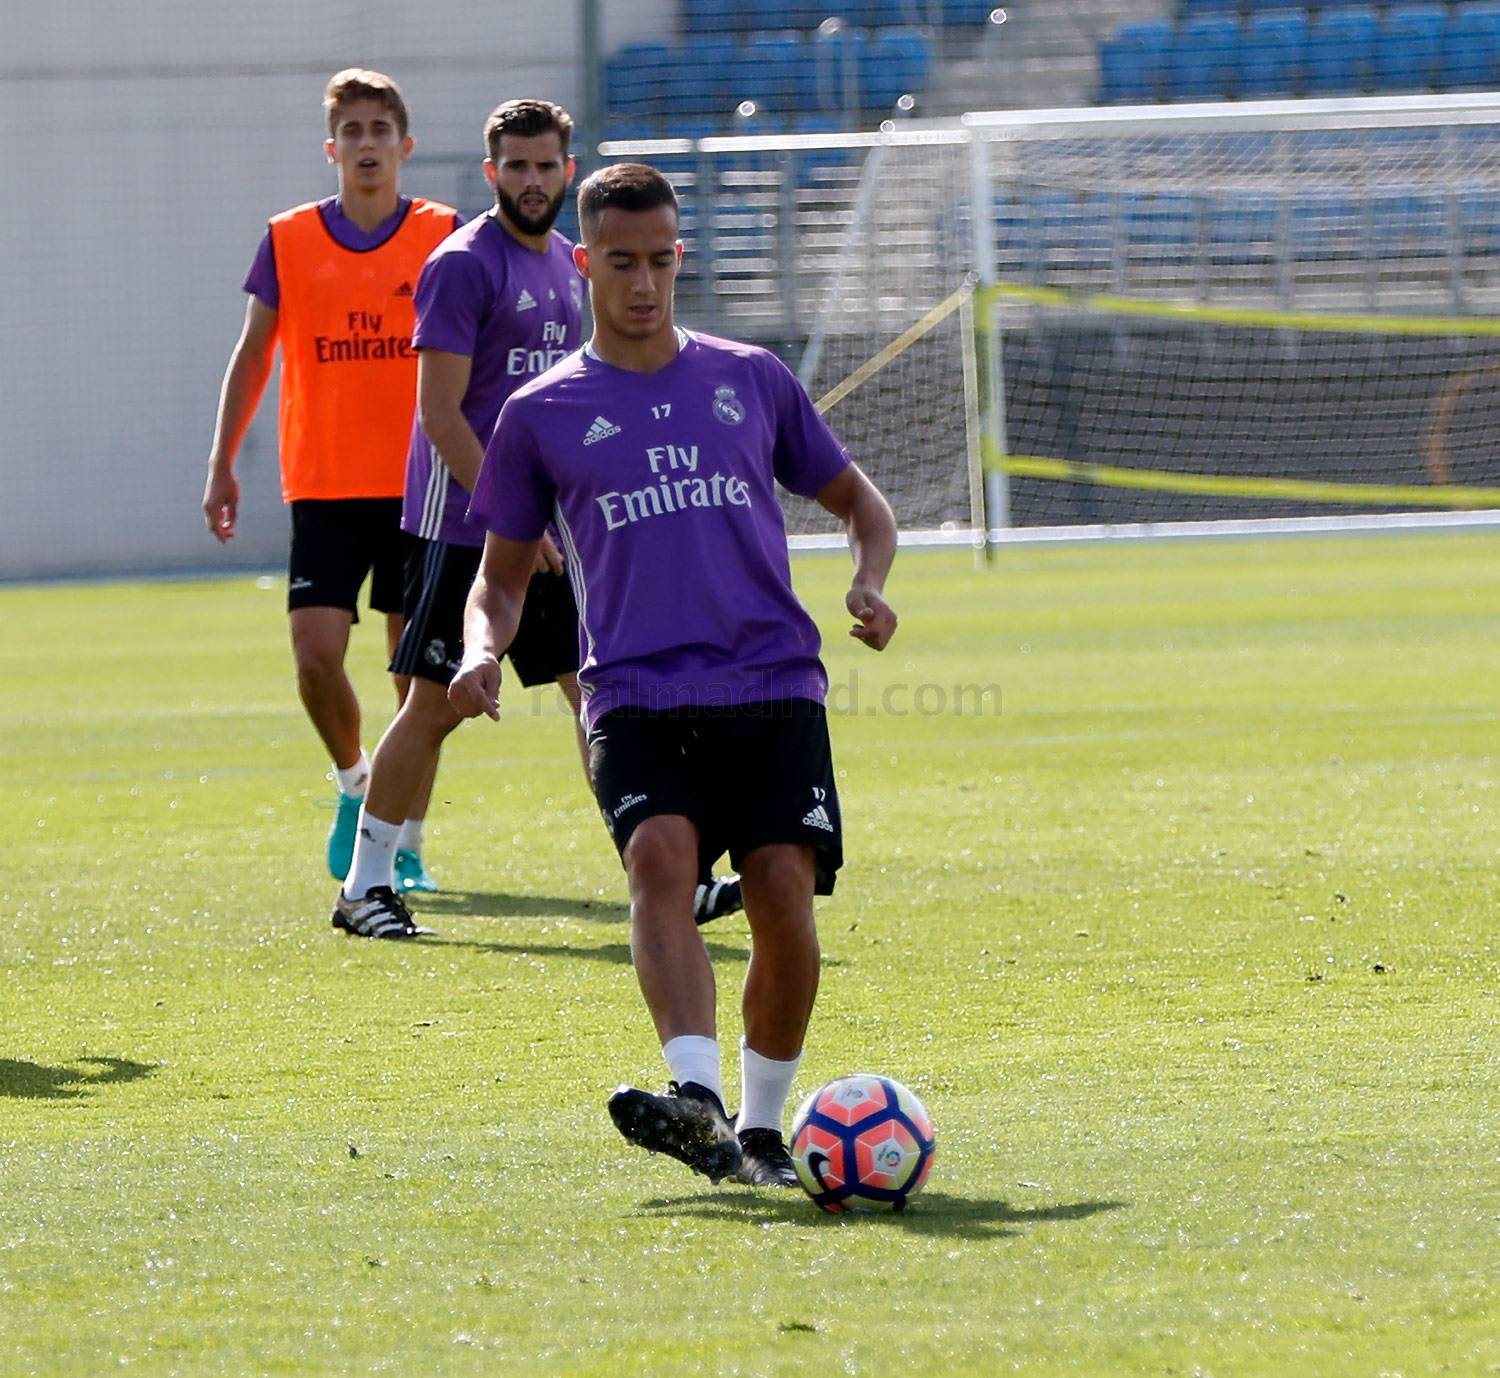 Real Madrid - Entrenamiento del Real Madrid - 29-09-2016